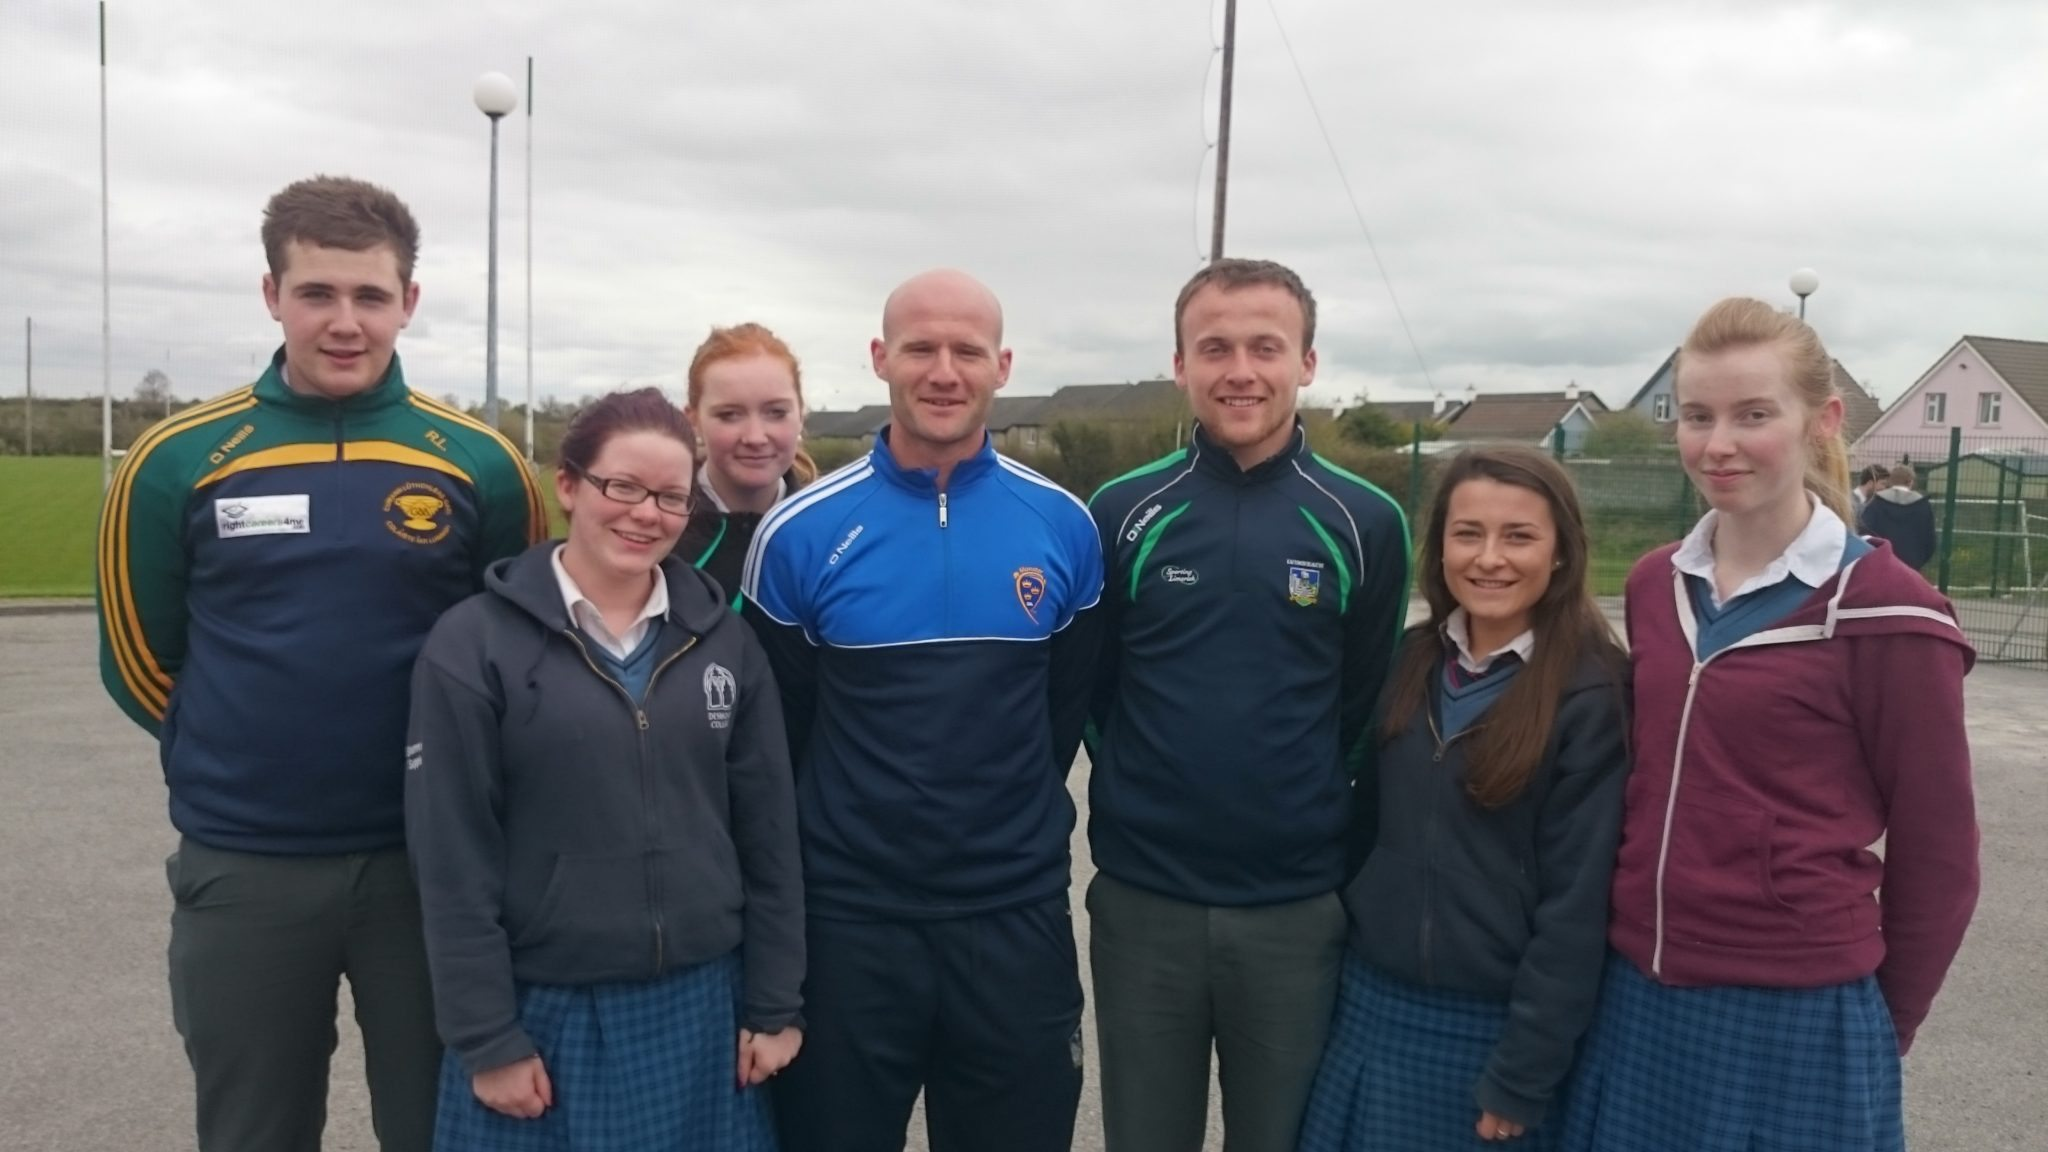 Rhys Lambardarios, Shannon Supple, Rebecca Folan, William Hurley, Leanne Browne and Sinead Liston with James Ryan at Desmond College Active Schools Week April 13th to April 17th 2015